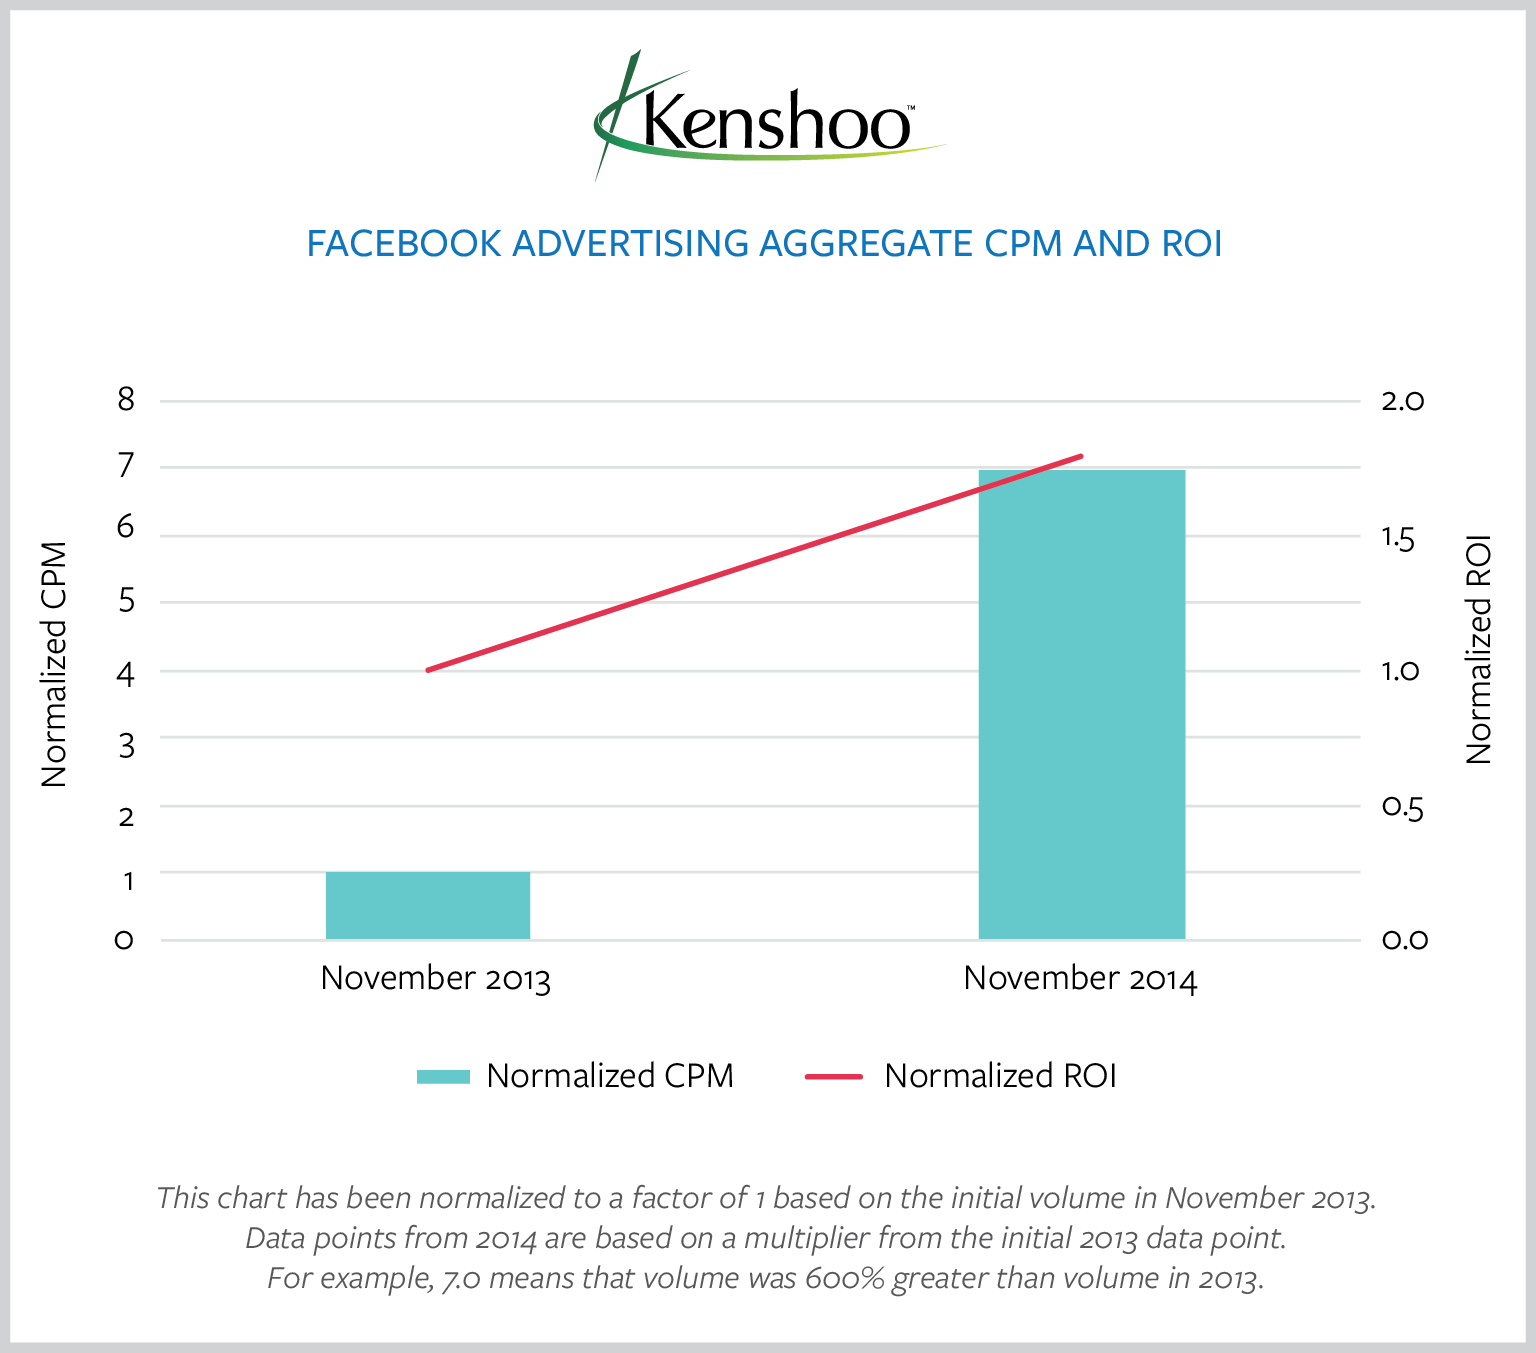 kenshoo-facebook-advertising-aggregate-cpm-roi